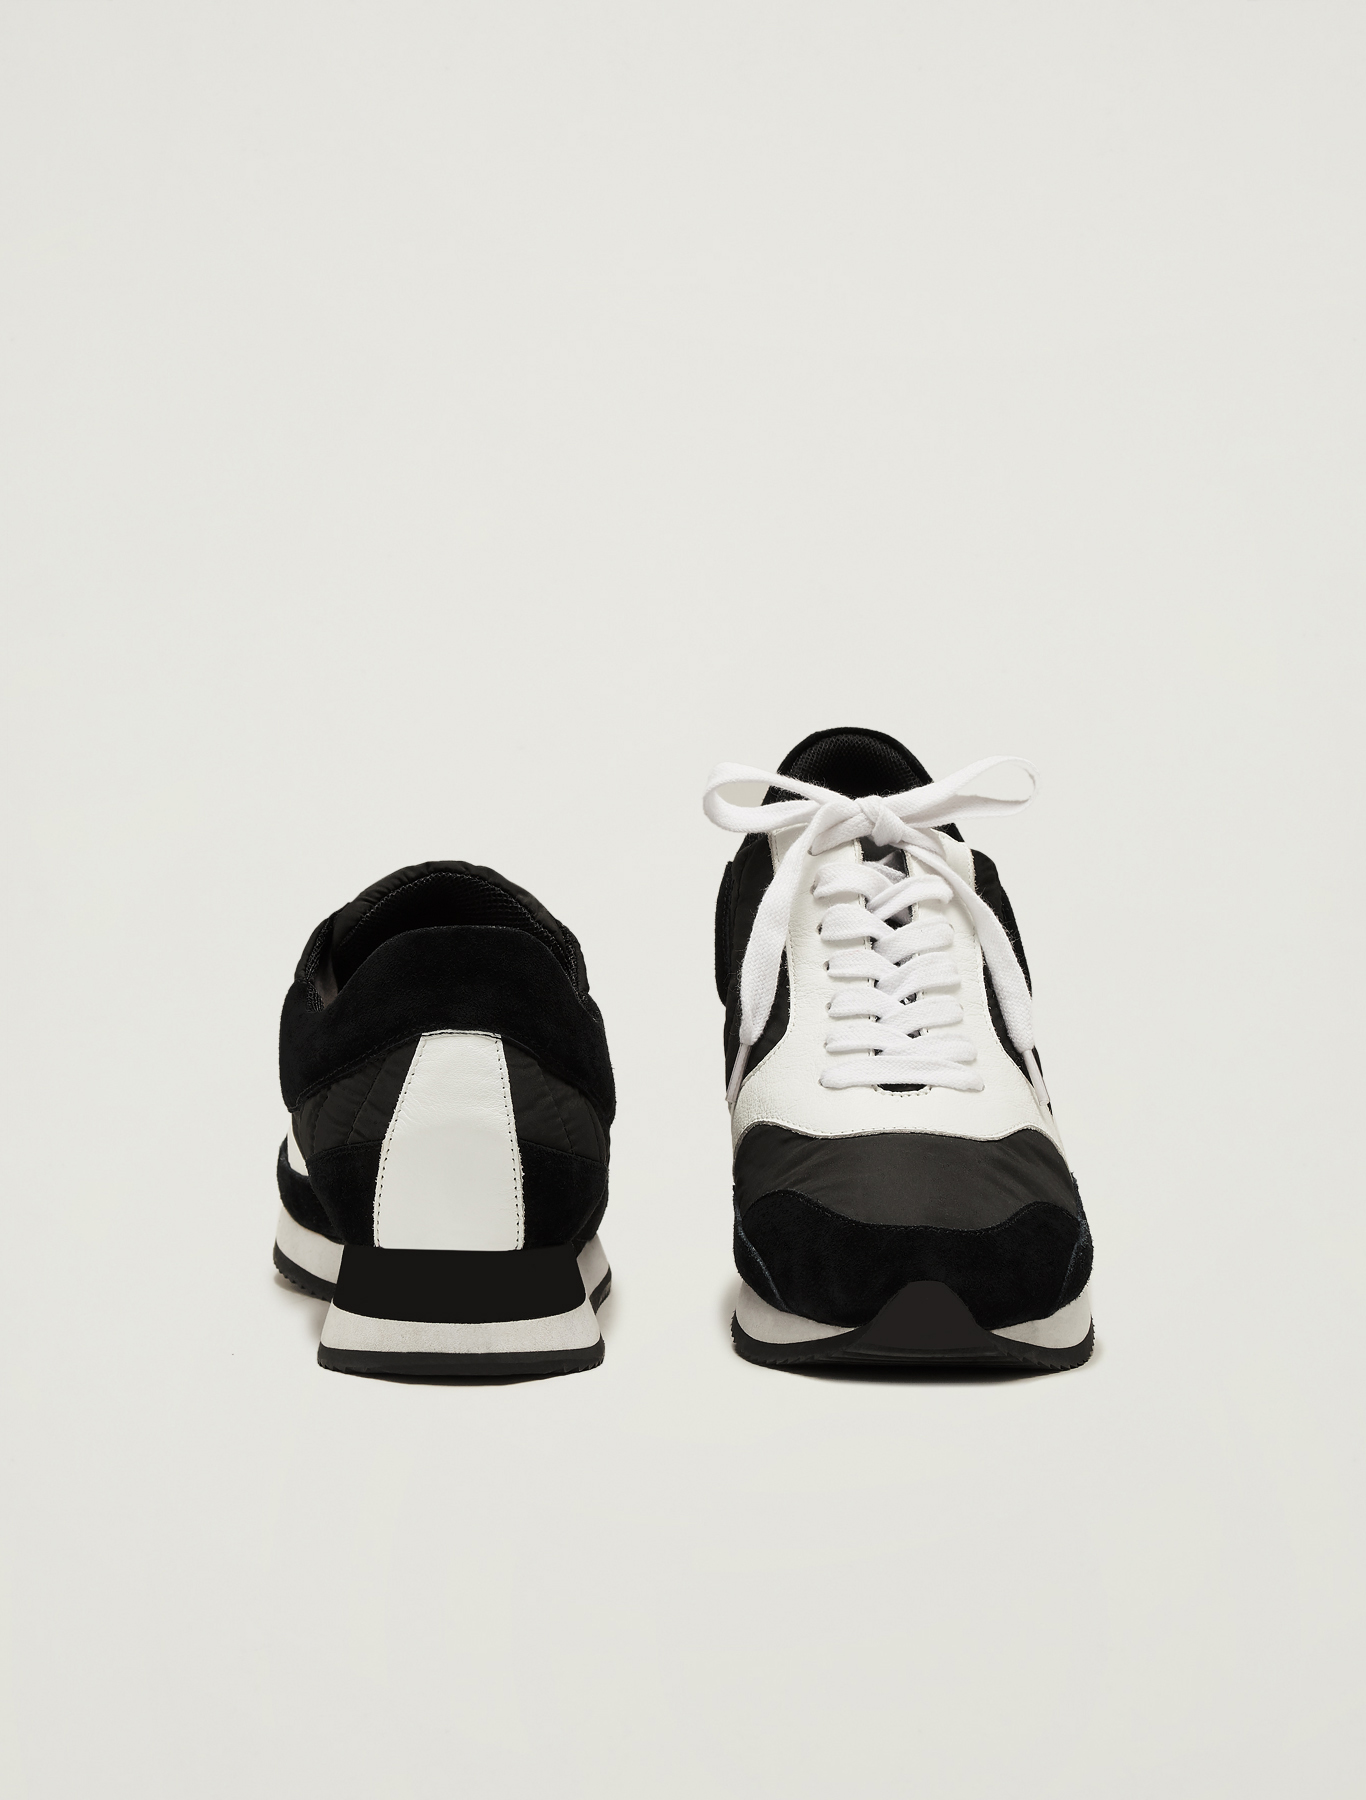 Sneakers in suede, leather and nylon - black - pennyblack